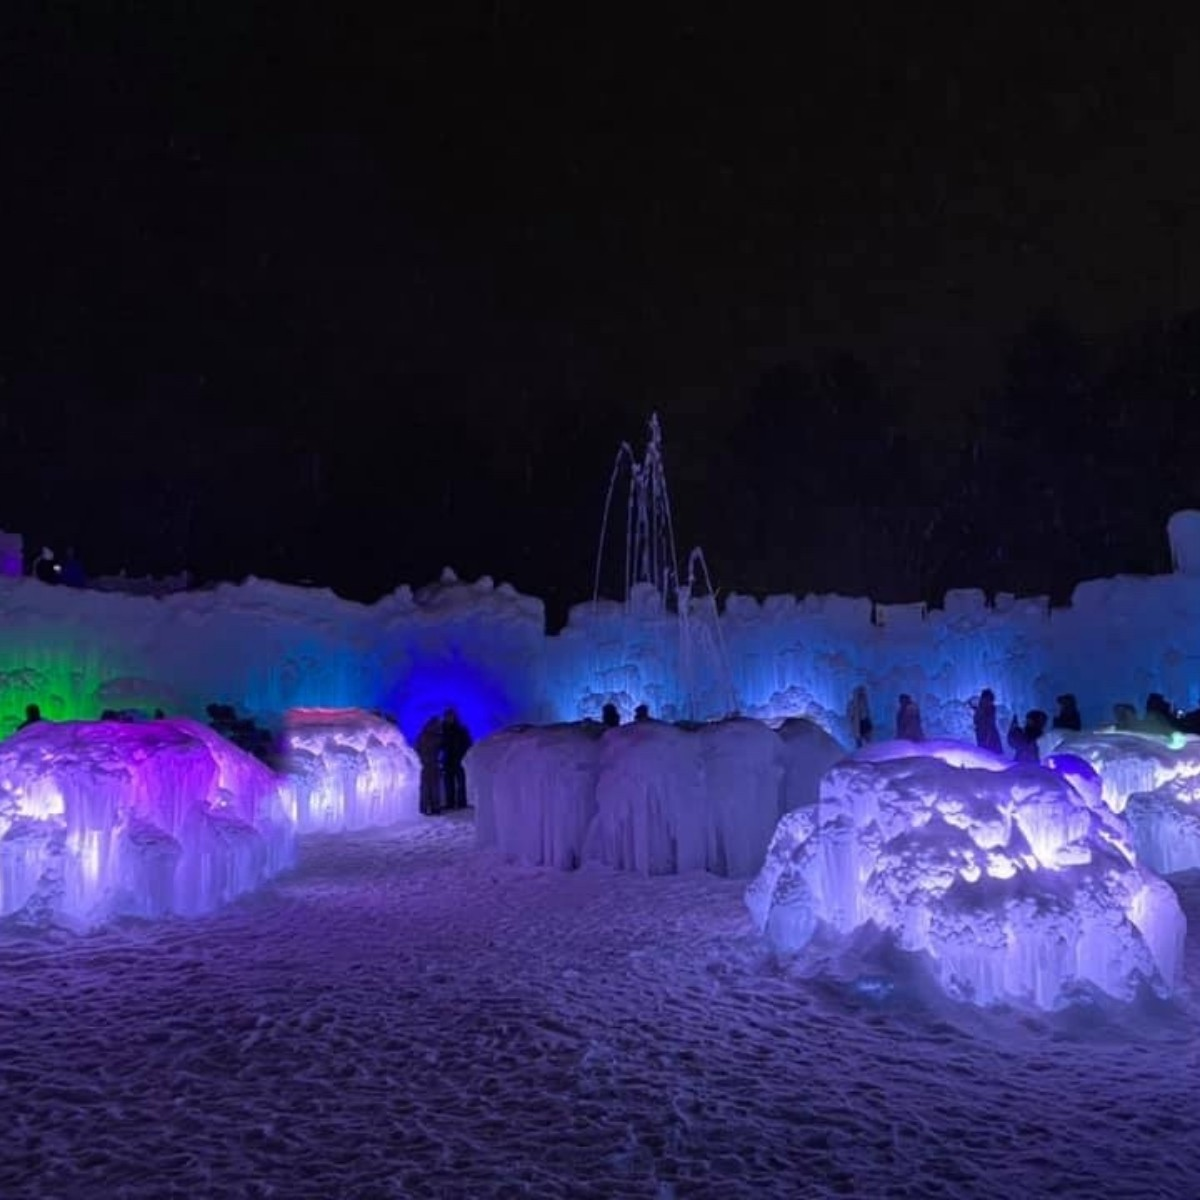 The Ice Castles at night all aglow in purples and blues.